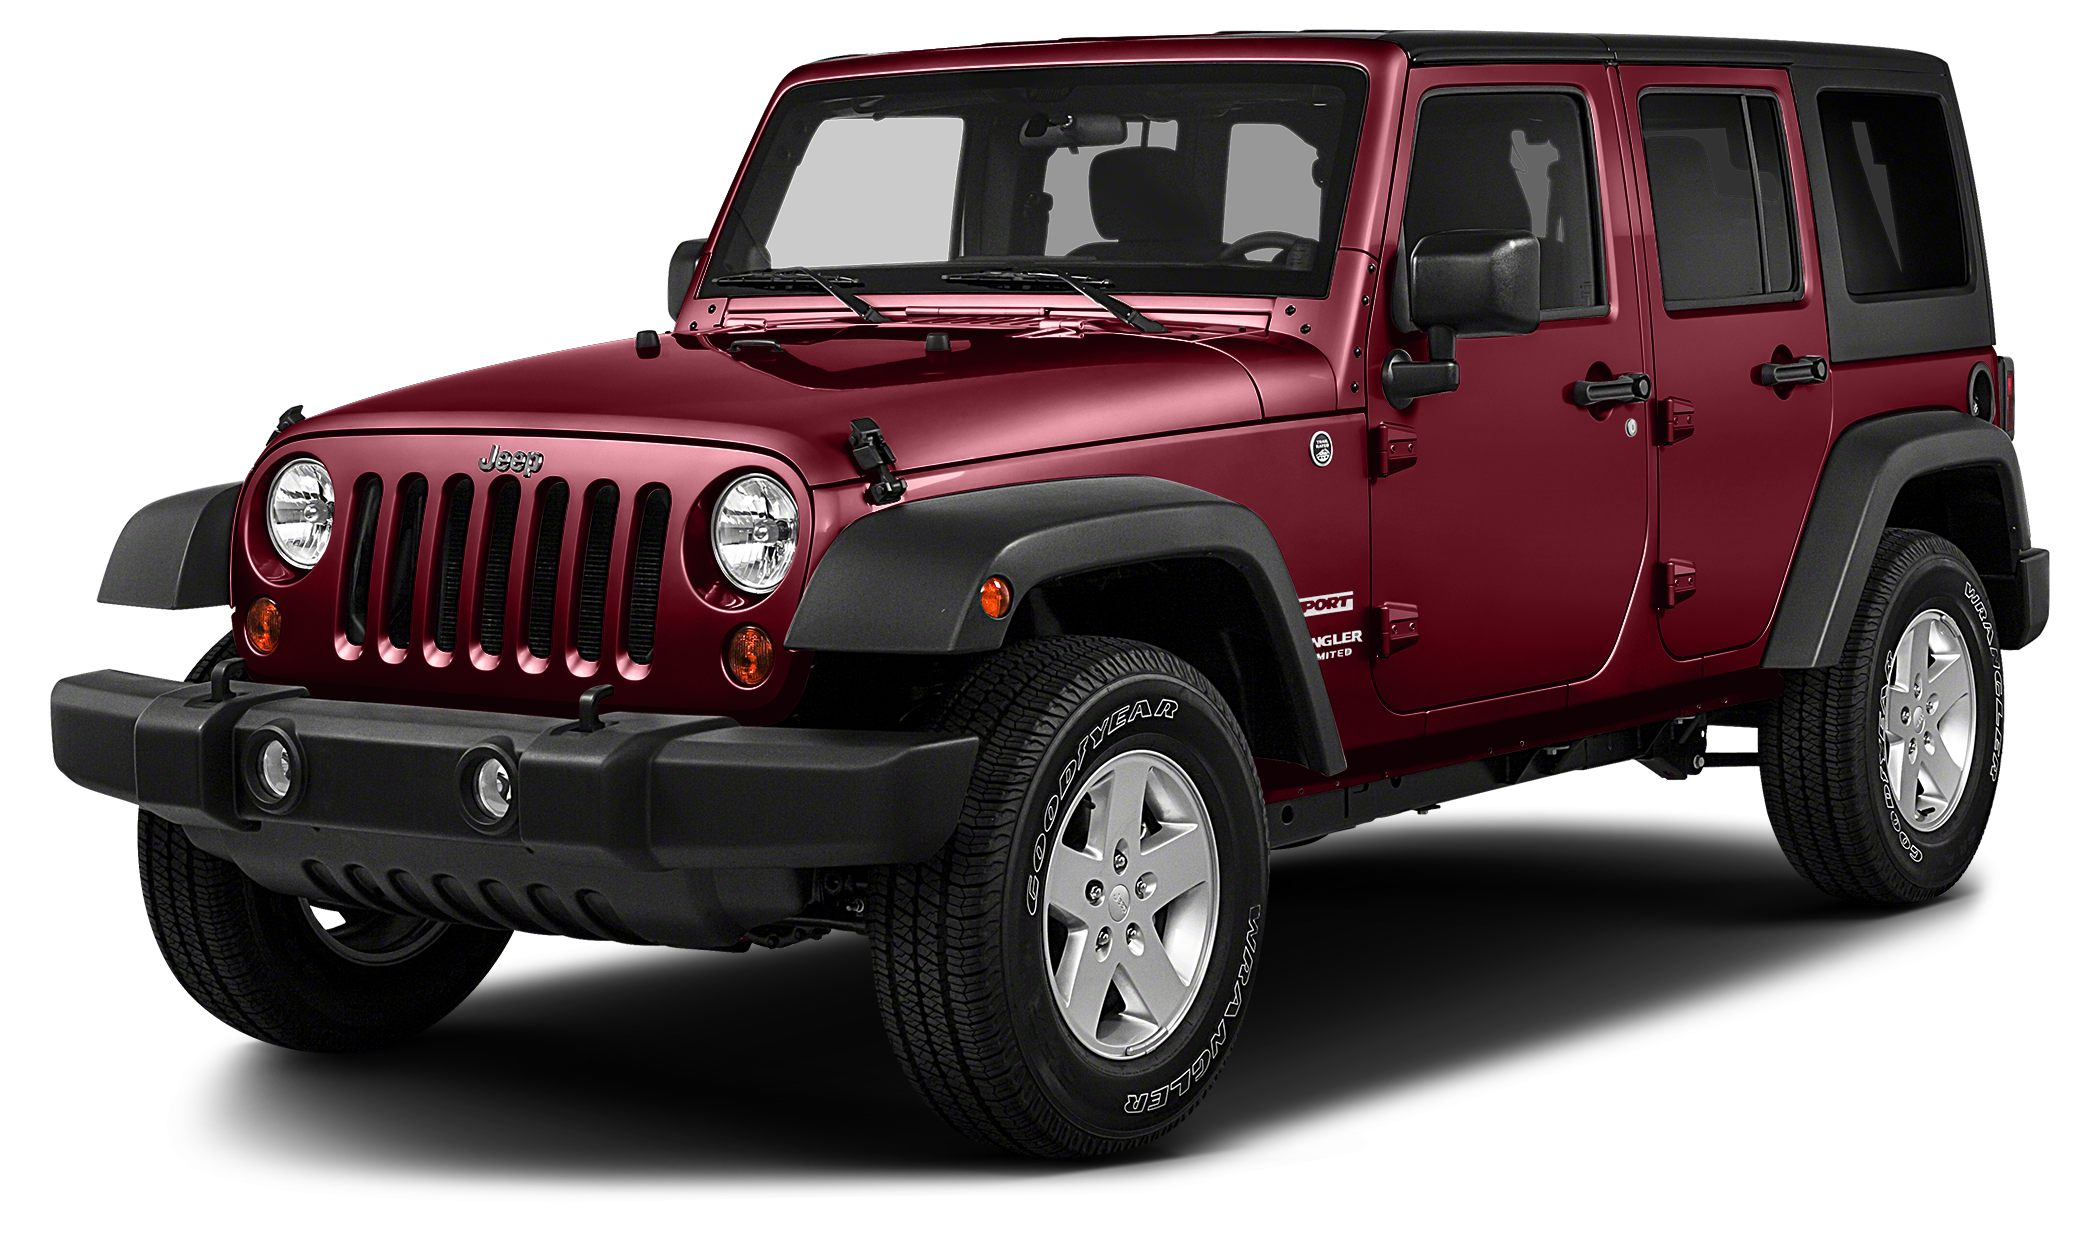 2017 Jeep Wrangler Unlimited Sport 2017 Jeep Wrangler Unlimited Sport in Gobi Clearcoat vehicle hi